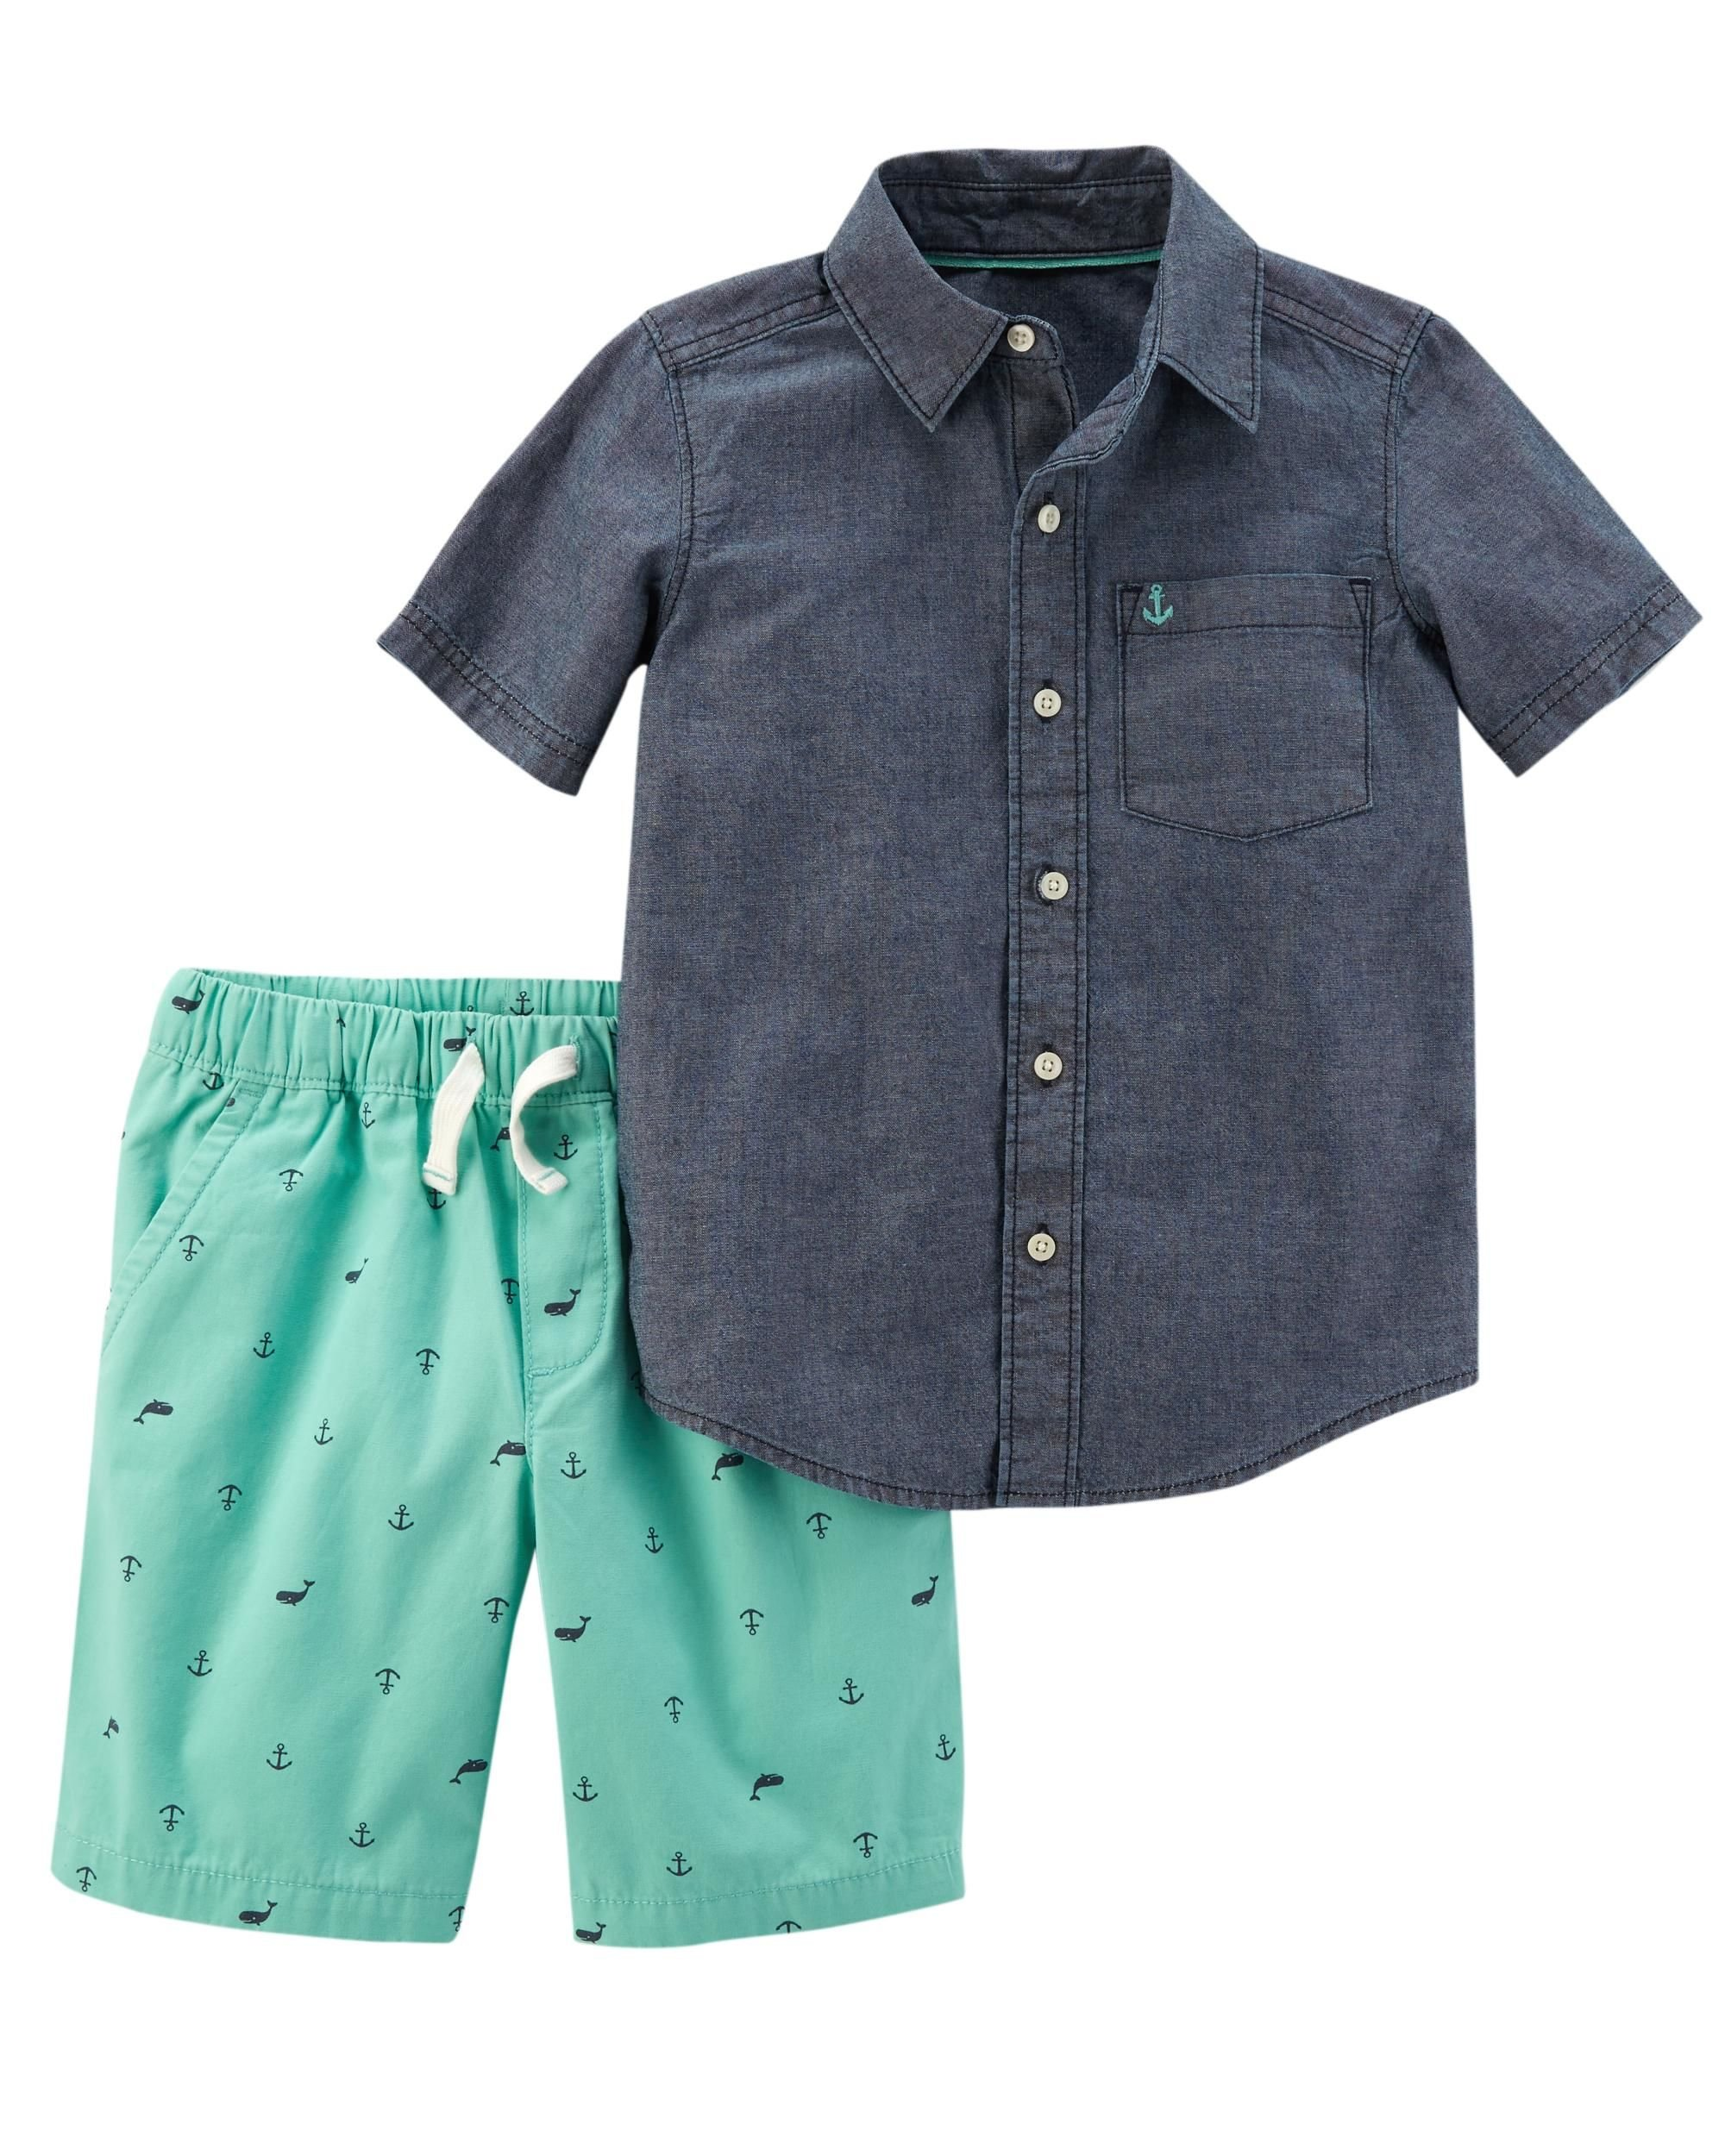 Carter's Boys' Newborn-5T 2 Piece Short Sleeve Sunglass Pocket Polo and French Terry Shorts Set (6 Months, Mint/Chambray)